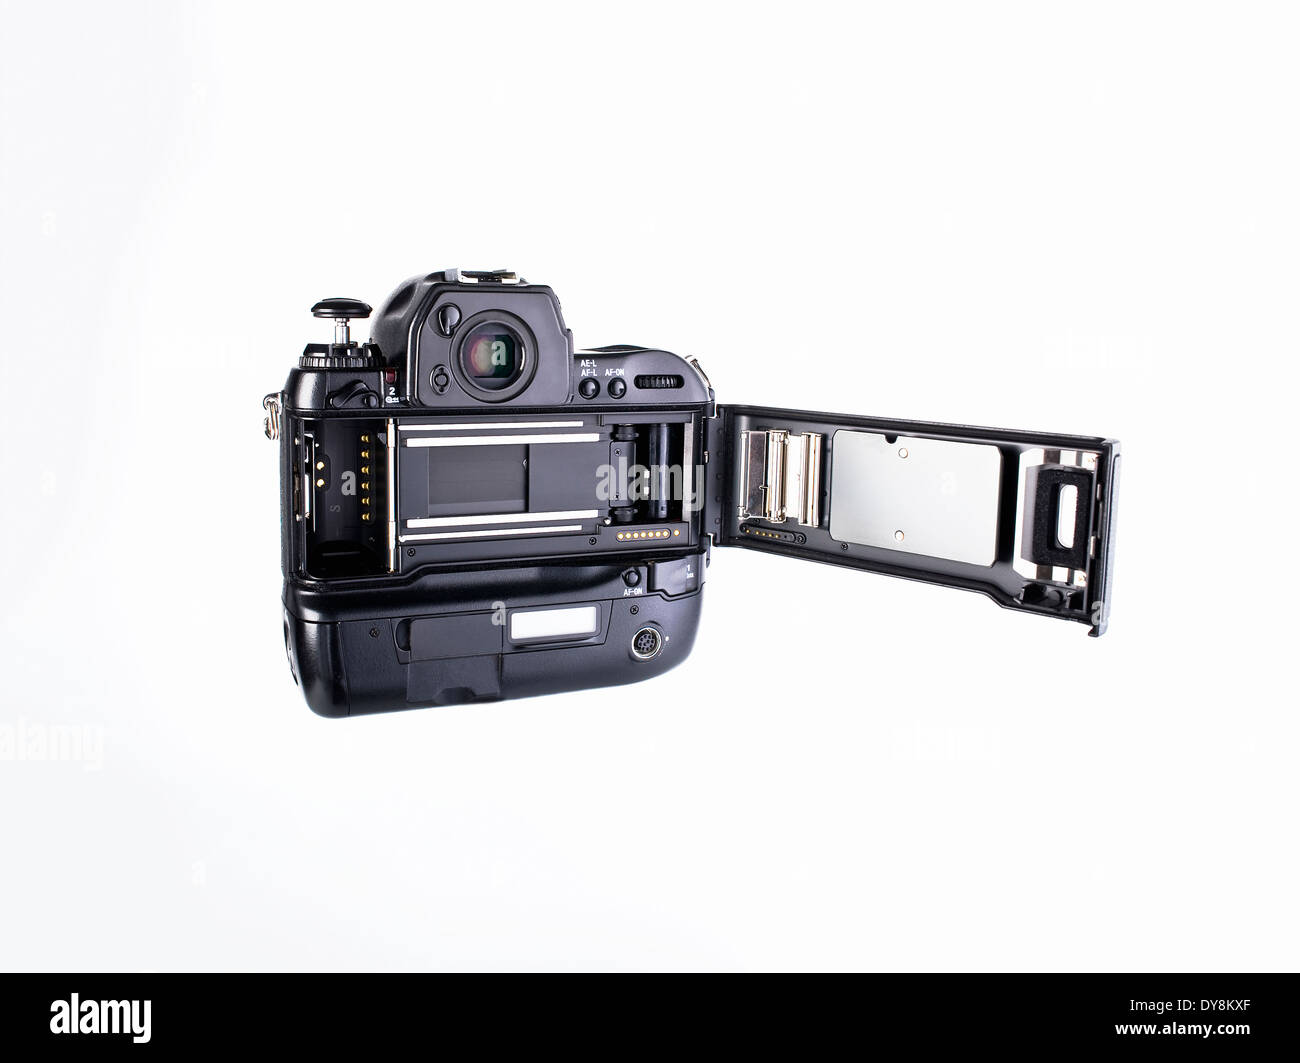 The back of a professional 35mm film camera with film loading door open to show film compartment and shutter - Stock Image